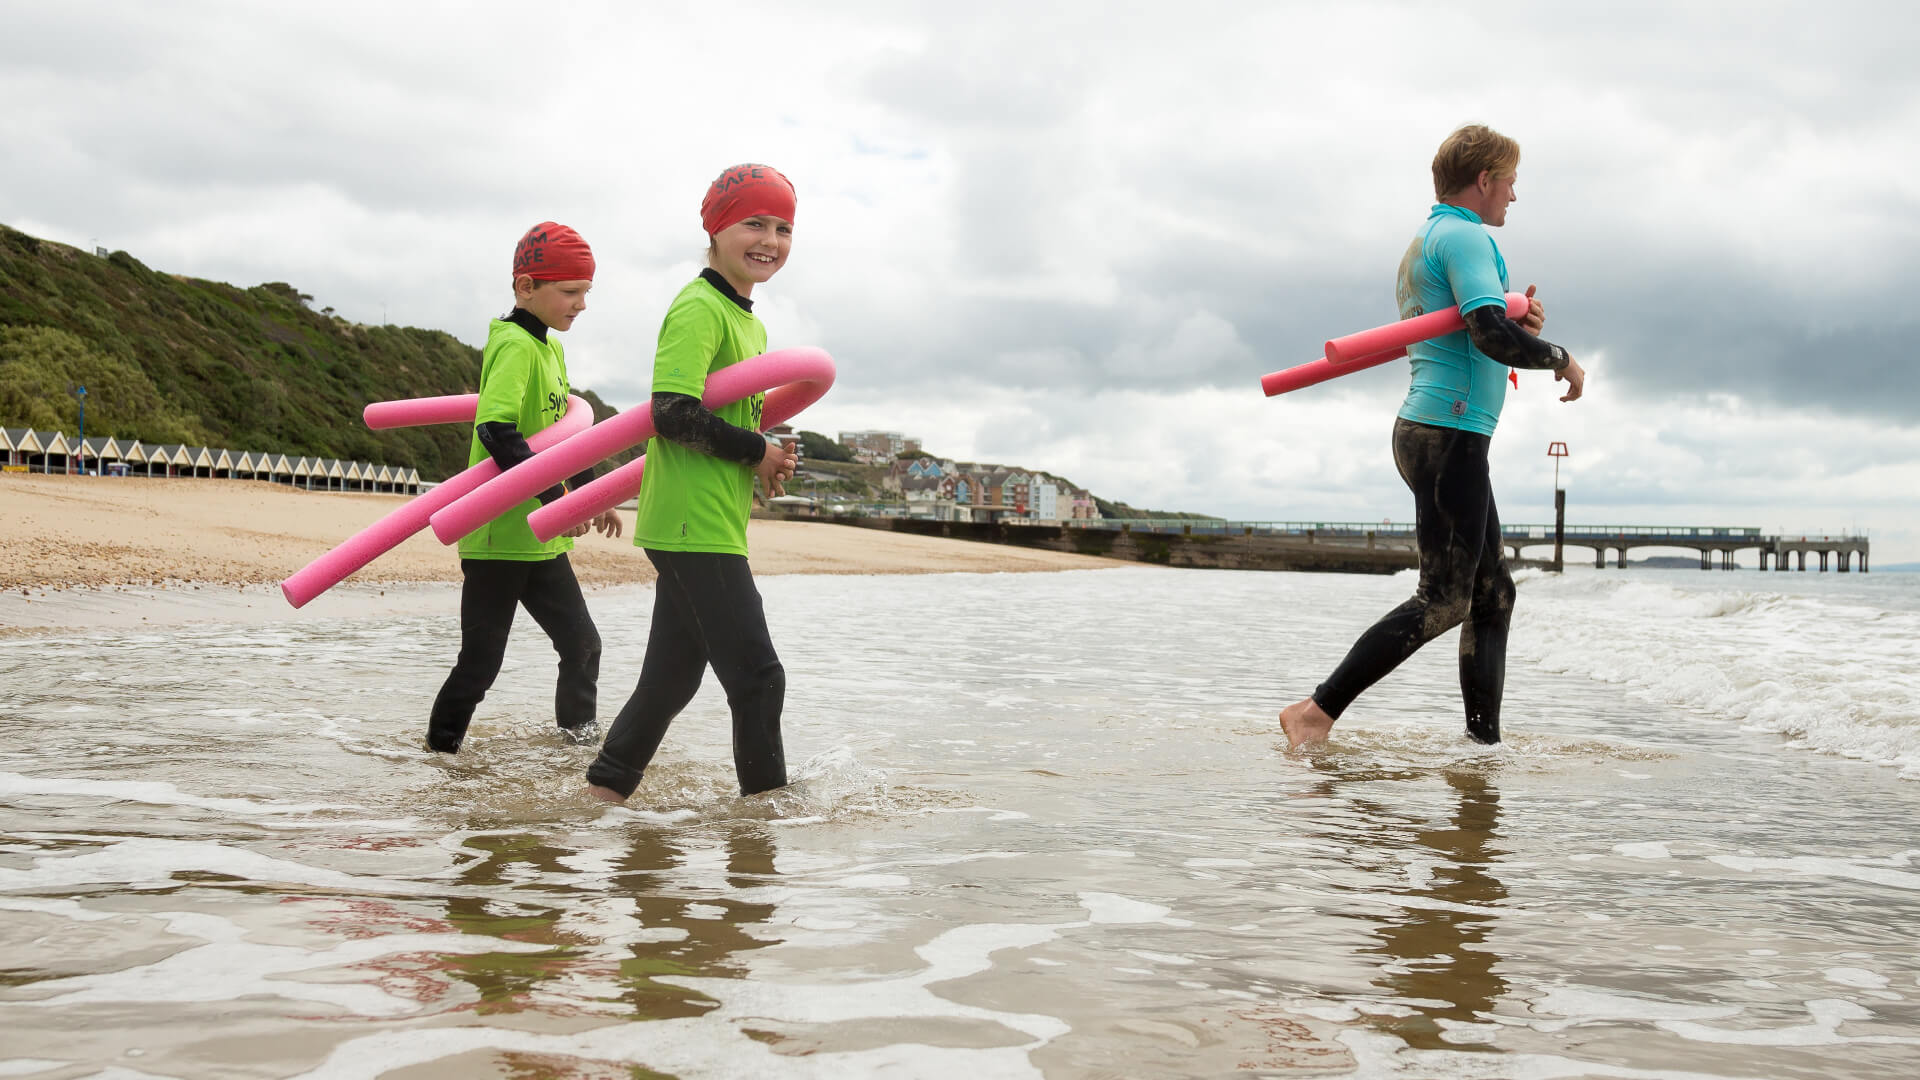 Two children and a swimming instructor in wetsuits walking into the sea